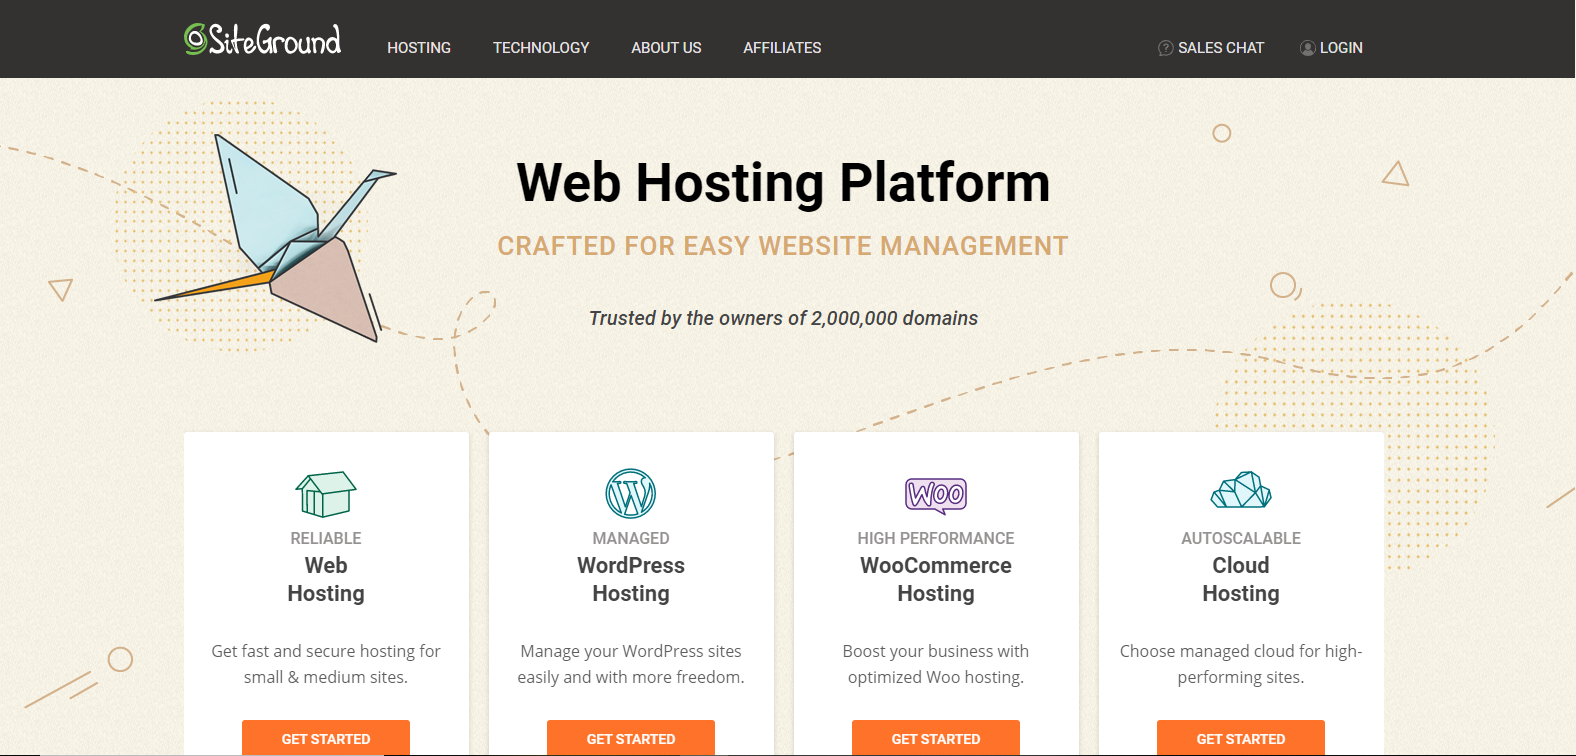 The Best 10 Web Hosting Providers For Your Small Business - Image 2